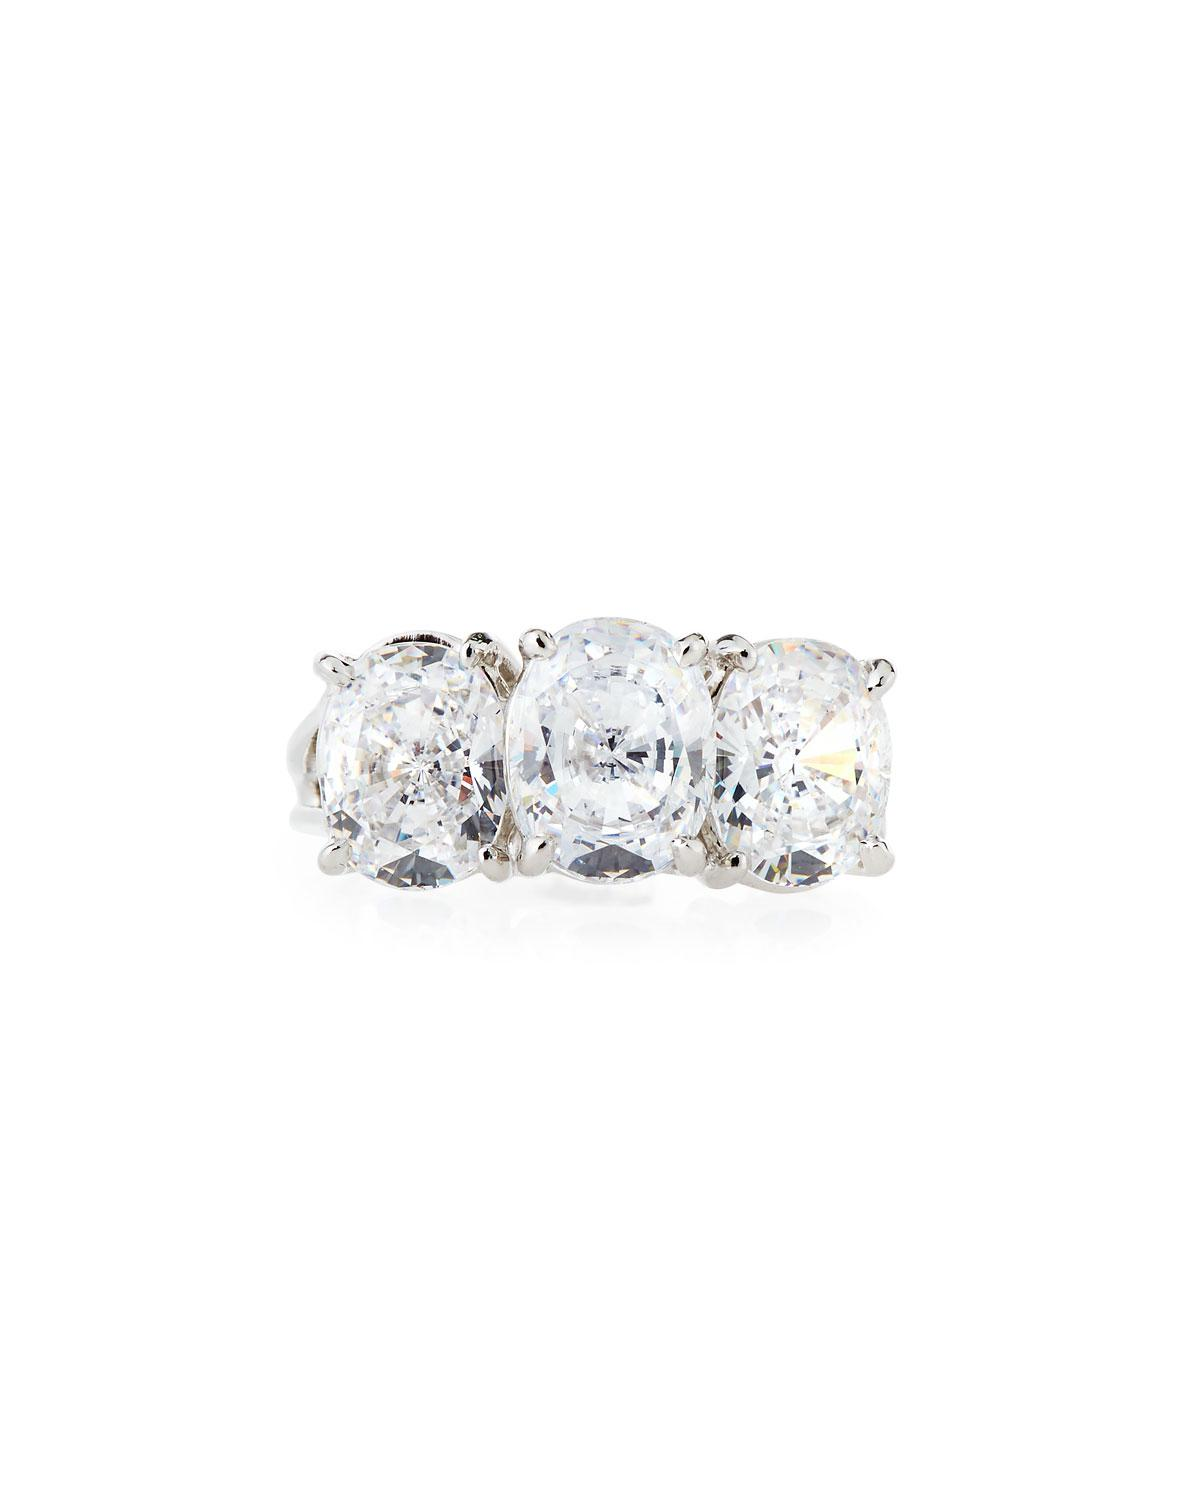 Fantasia Oval Cubic Zirconia Ring w/ Side Stones, Size 6